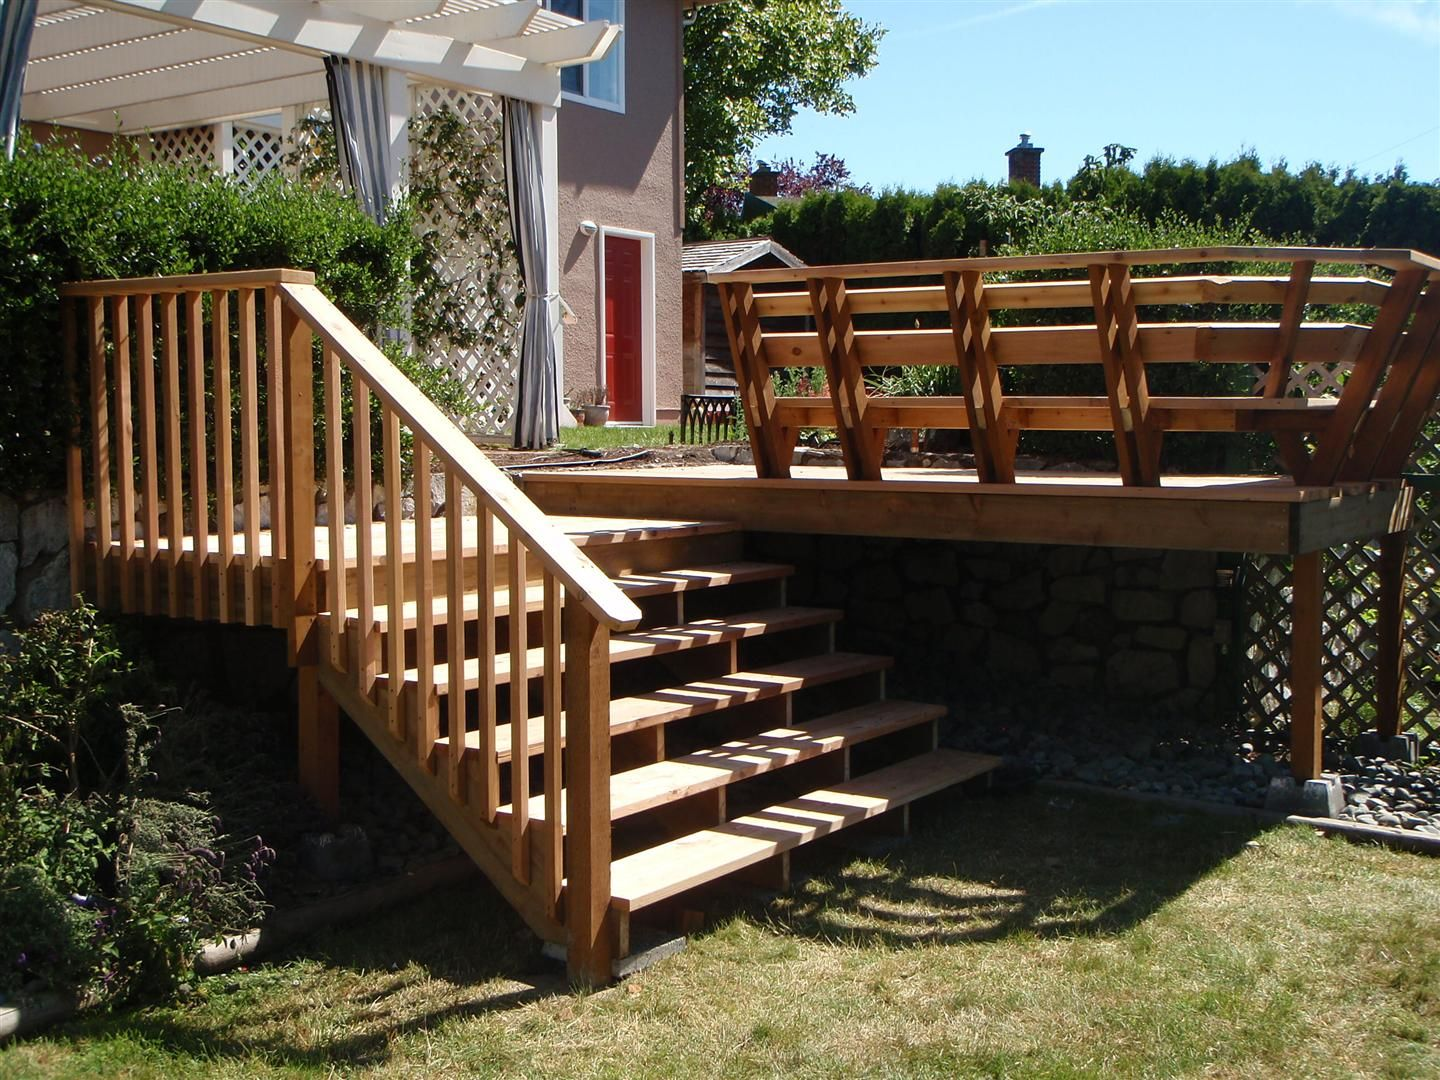 Best Deck Design Ideas, Deck Stairs And Bench 01: Deck Stairs ...